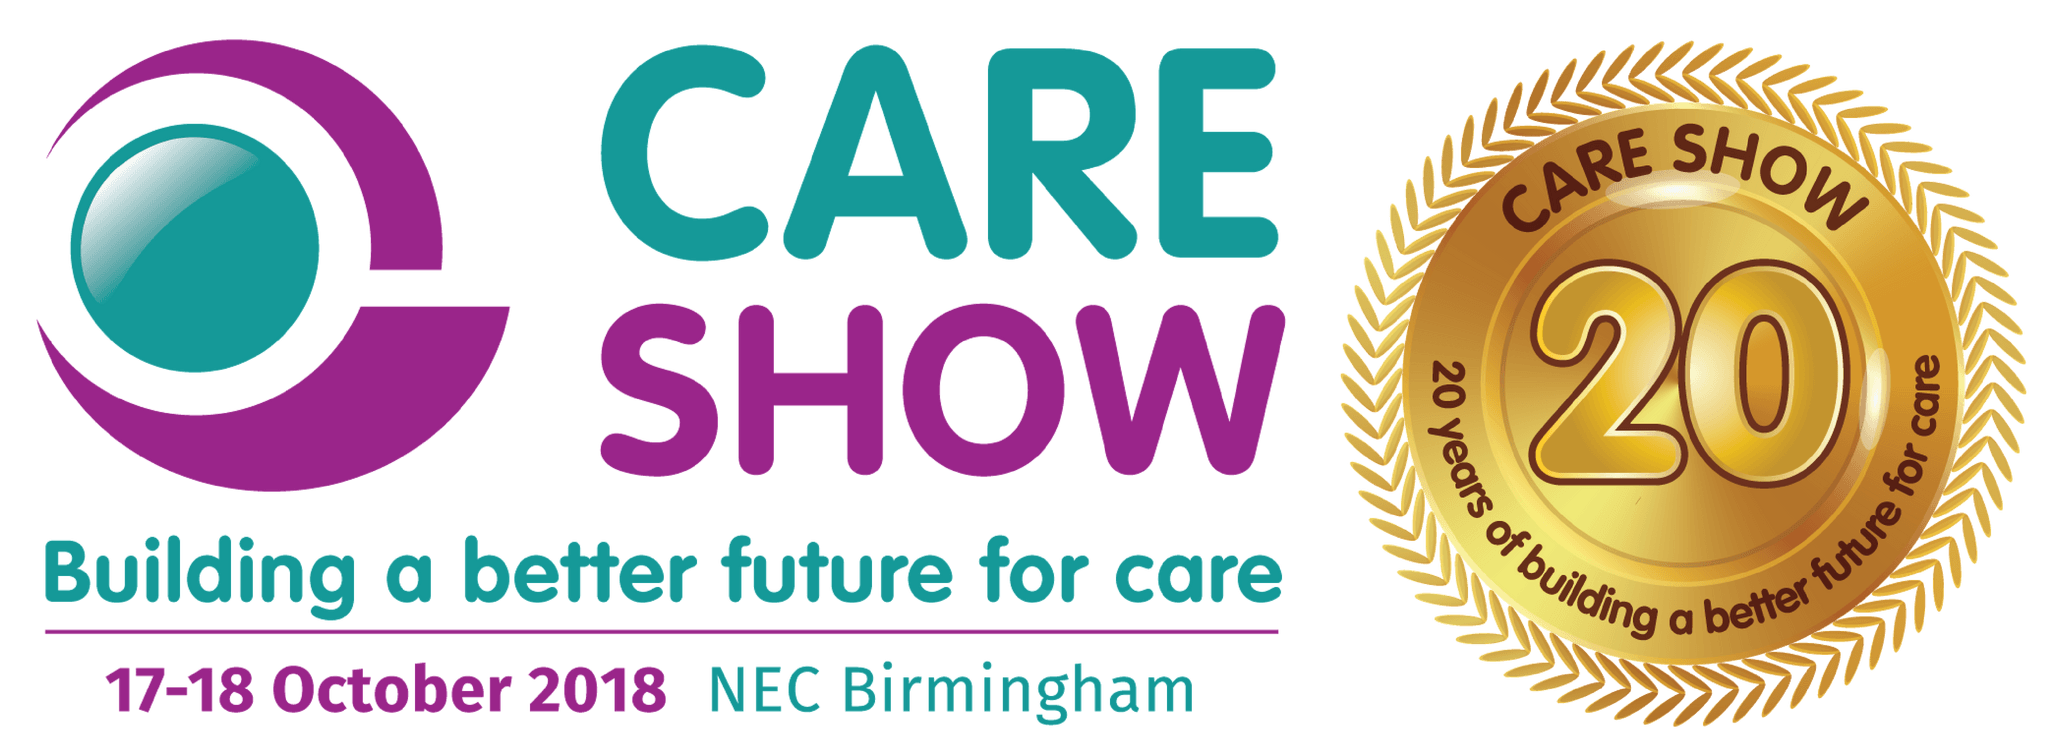 Meet us at The Care Show 2018